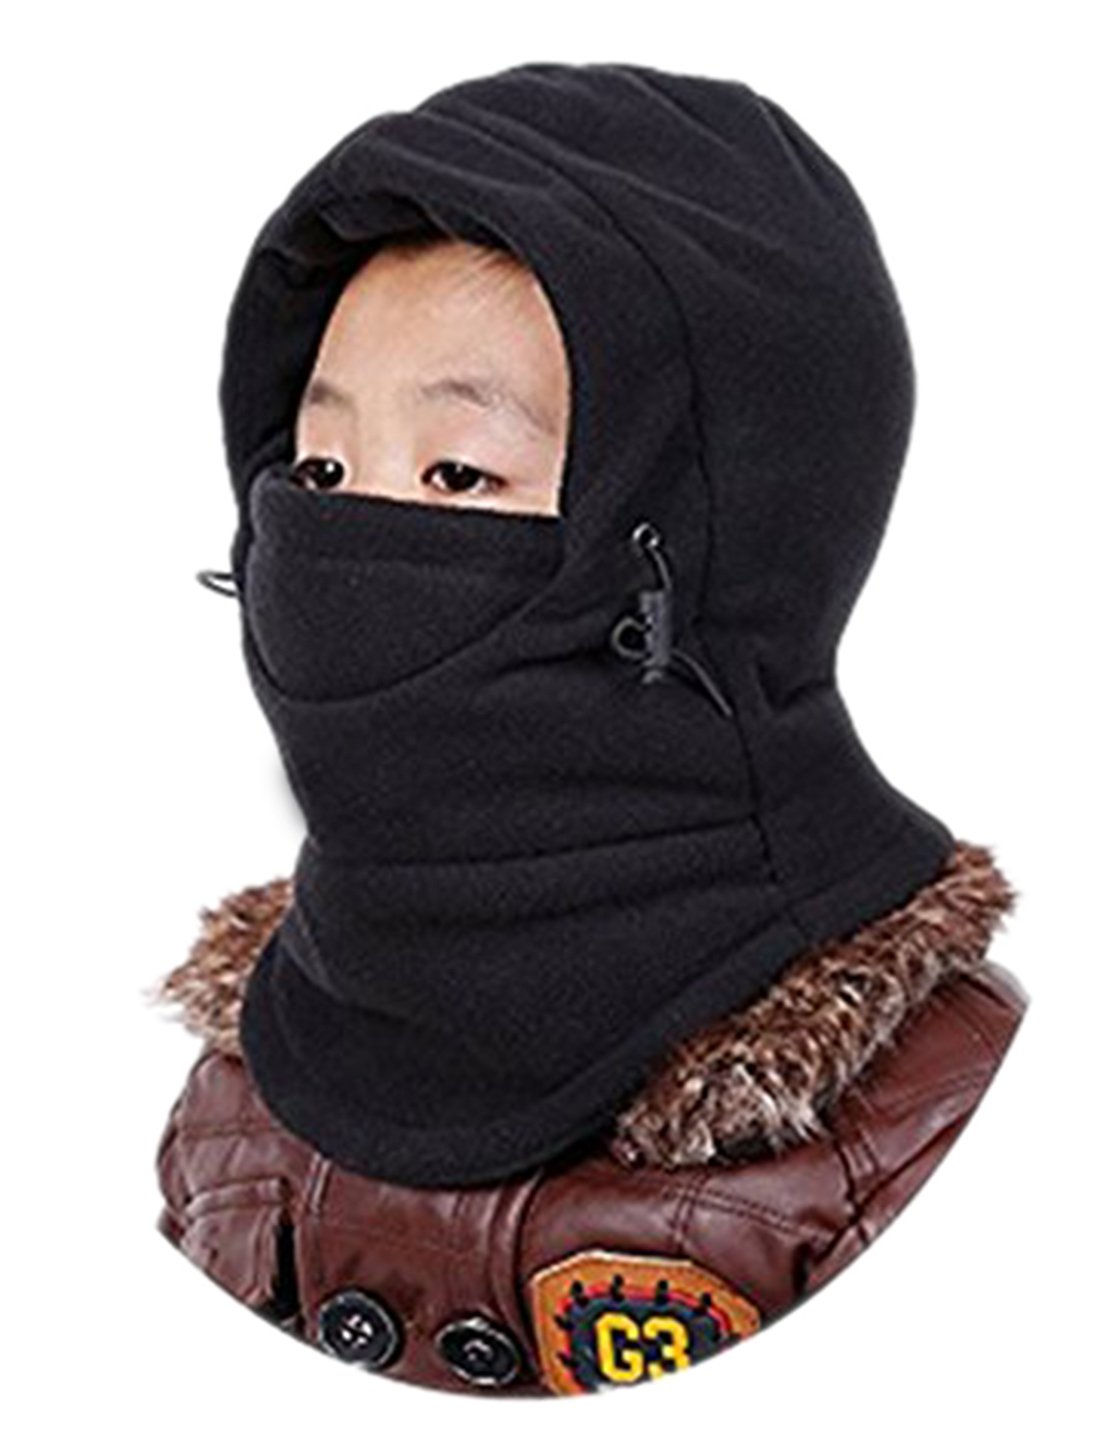 DD.UP MZ Children's Balaclava Hat Winter Warm Windproof Ski Cover Cap Thick Thermal Adjustable Face Mask Hood